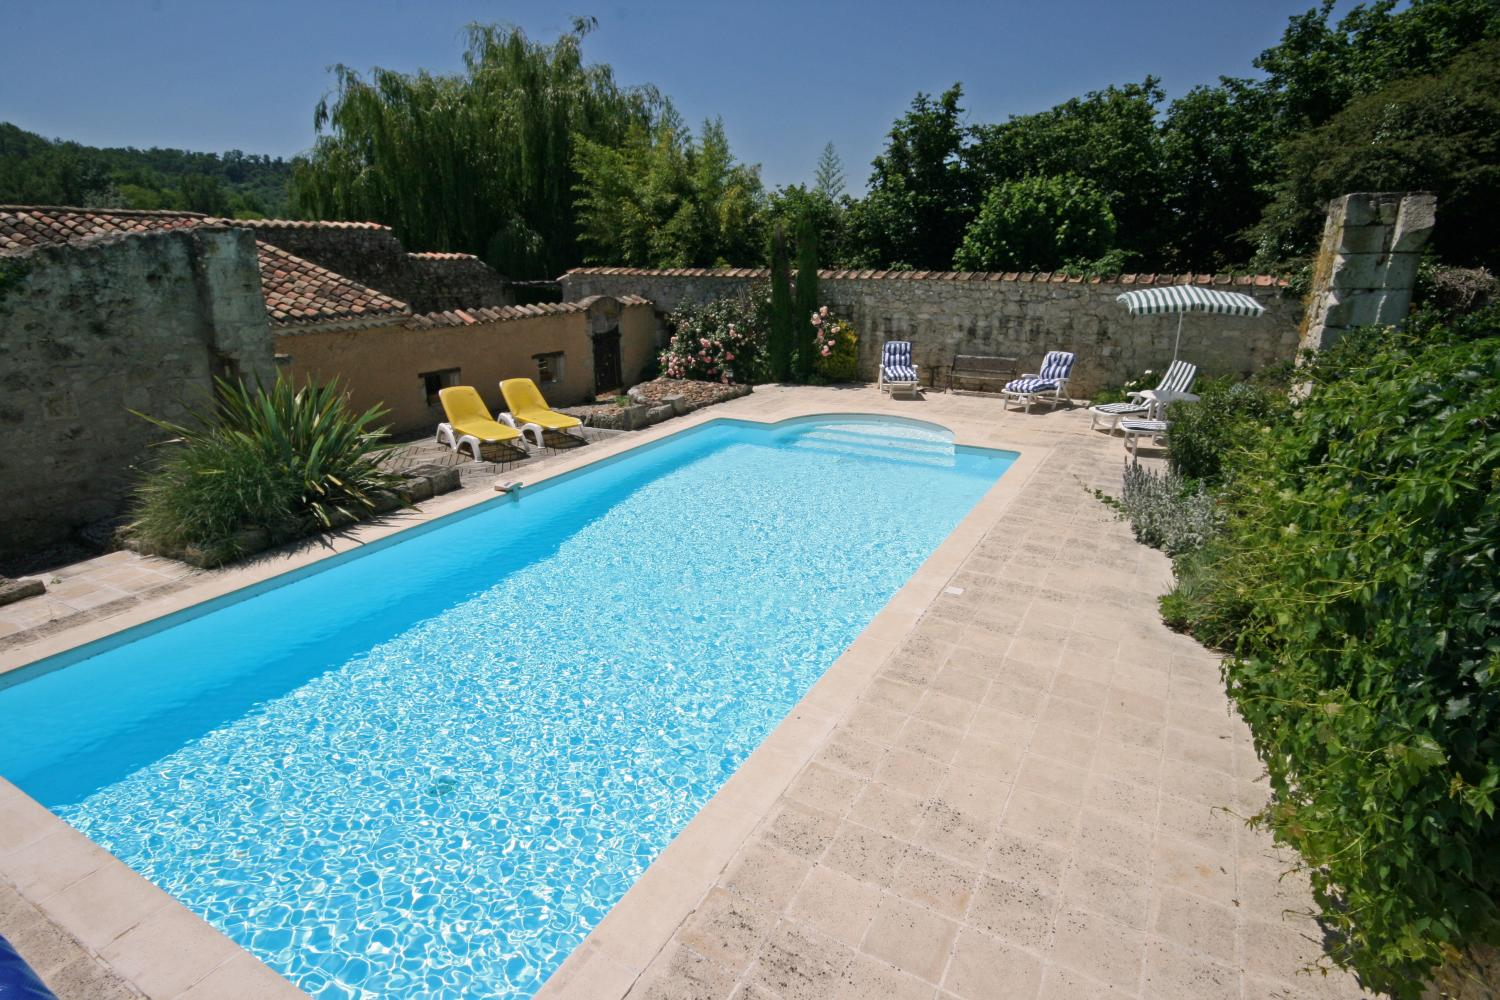 Lot et Garonne holiday cottage with pool